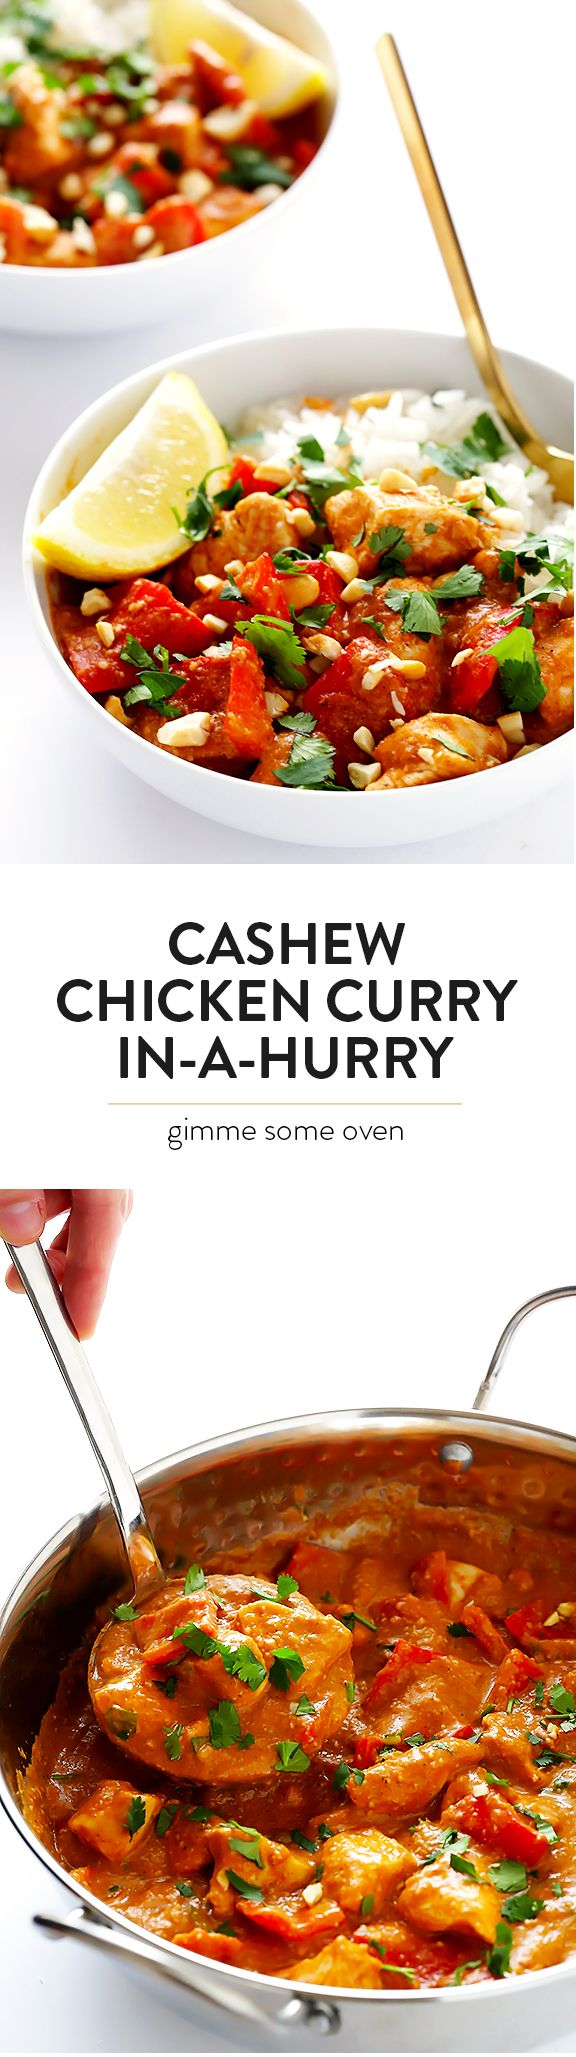 Cashew Chicken Curry (In A Hurry!) -- if you're craving Indian food, this delicious meal can be ready to go in less than 30 minutes! | gimmesomeoven.com